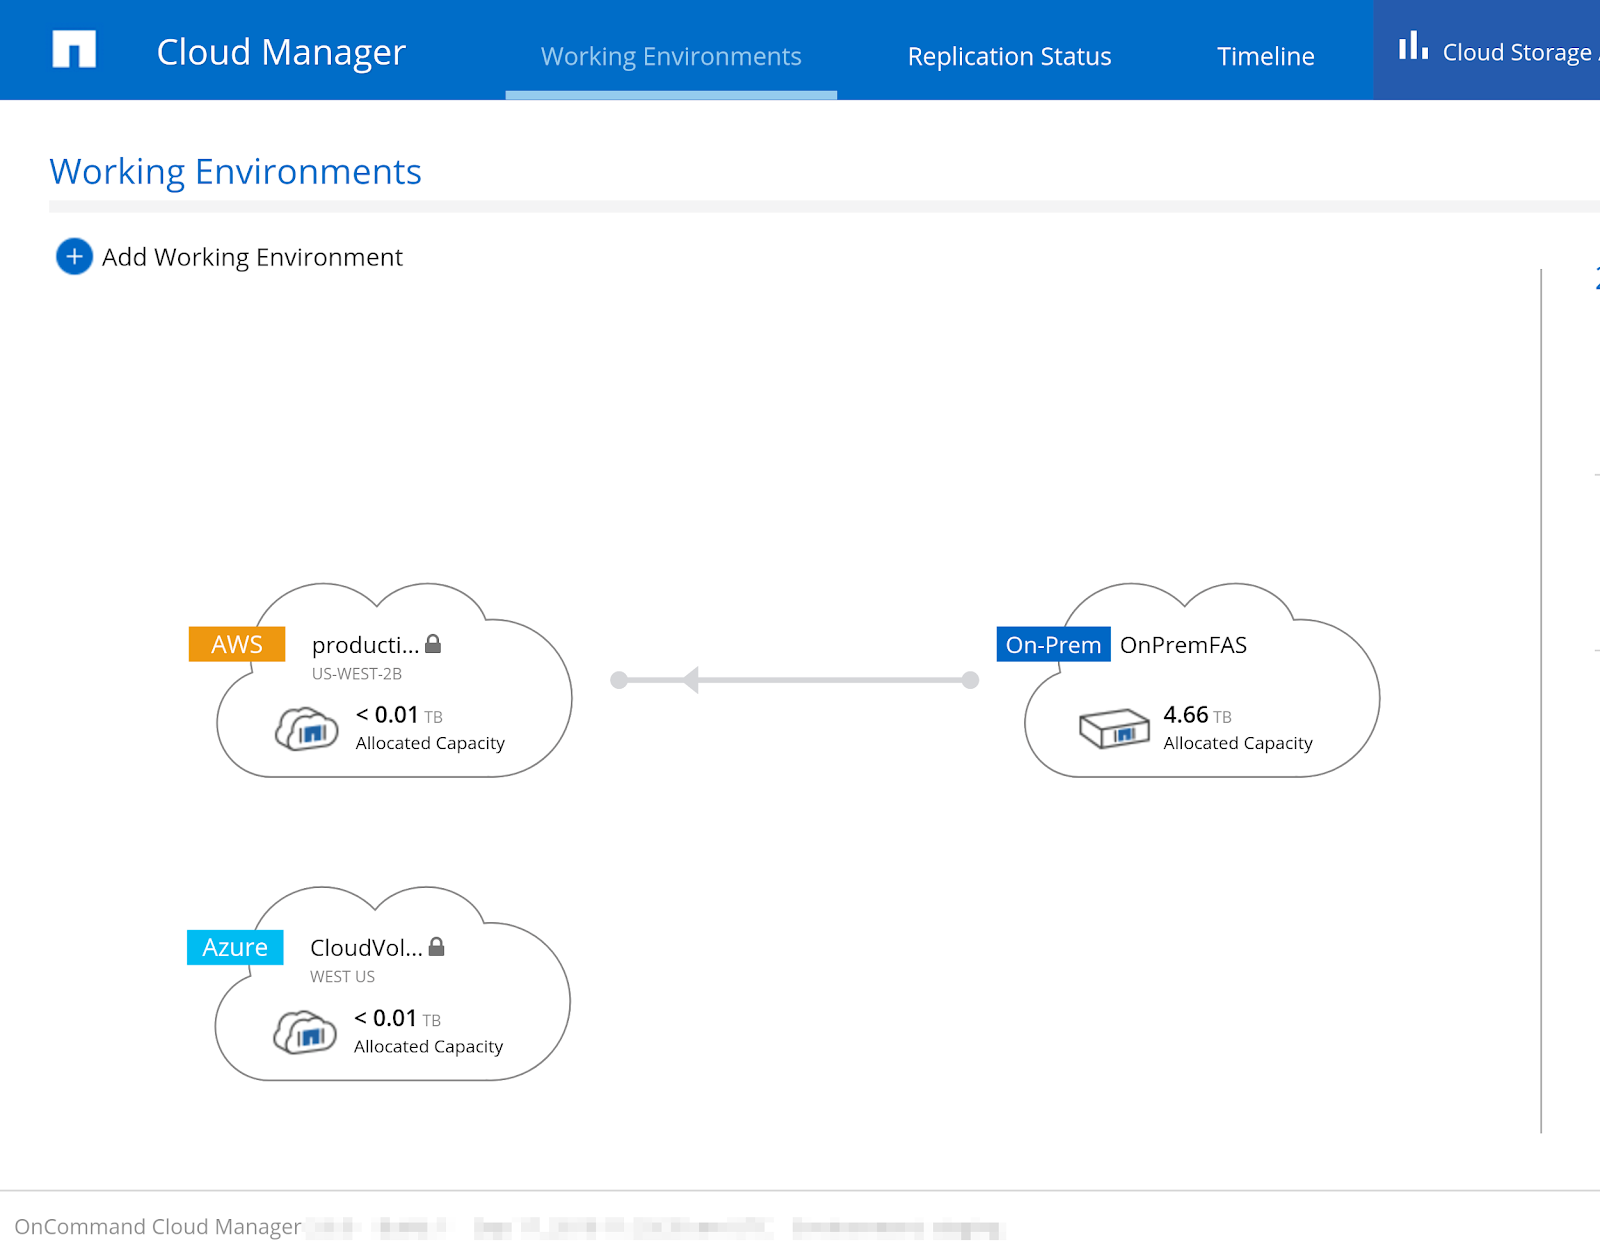 The Cloud Manager working environments dashboard